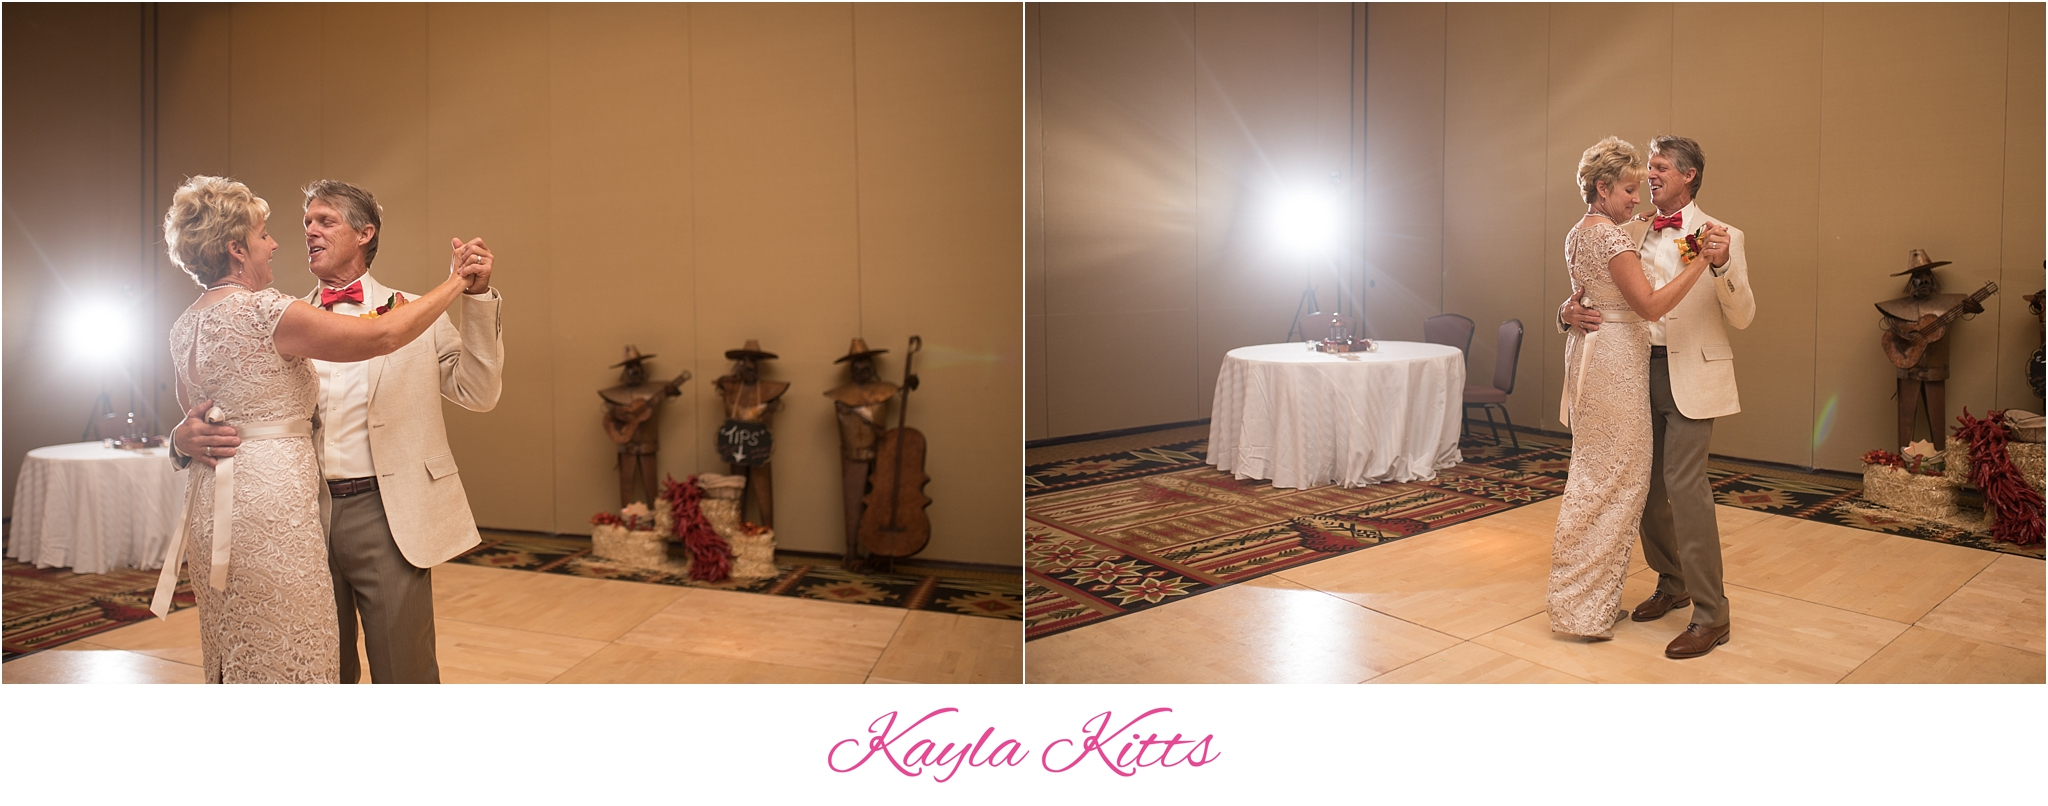 kayla kitts photography - albuquerque wedding photographer - albuquerque wedding photography - albuquerque venue - hyatt tamaya - hyatt tamaya wedding - new mexico wedding photographer_0055.jpg